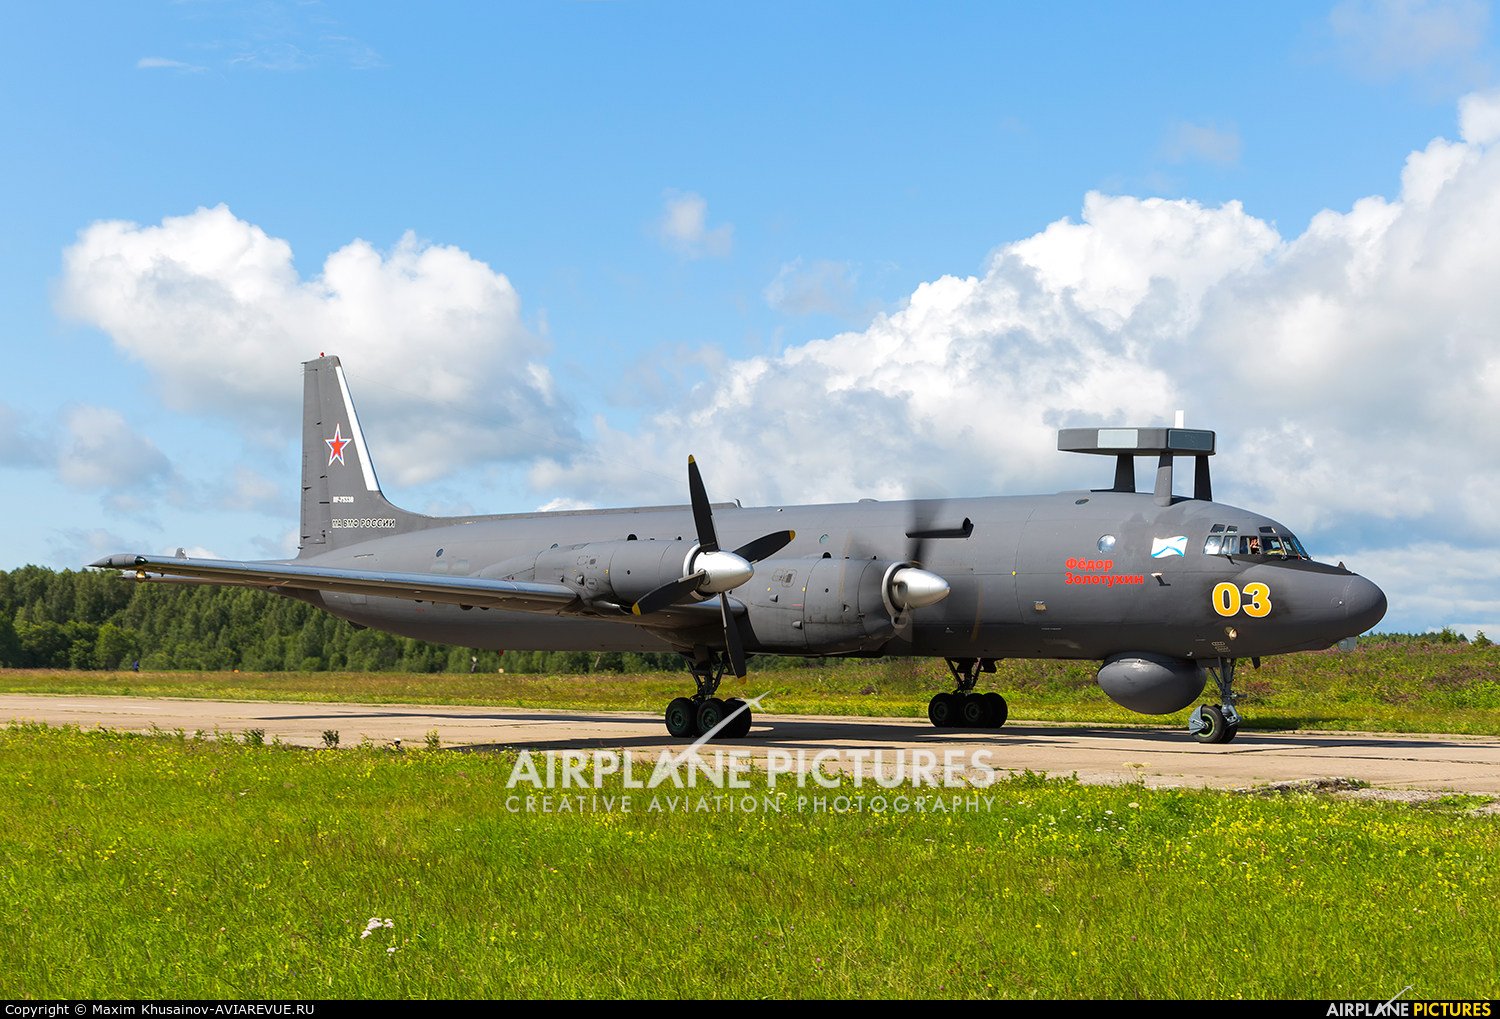 Russia - Navy 03 YELLOW aircraft at Undisclosed Location